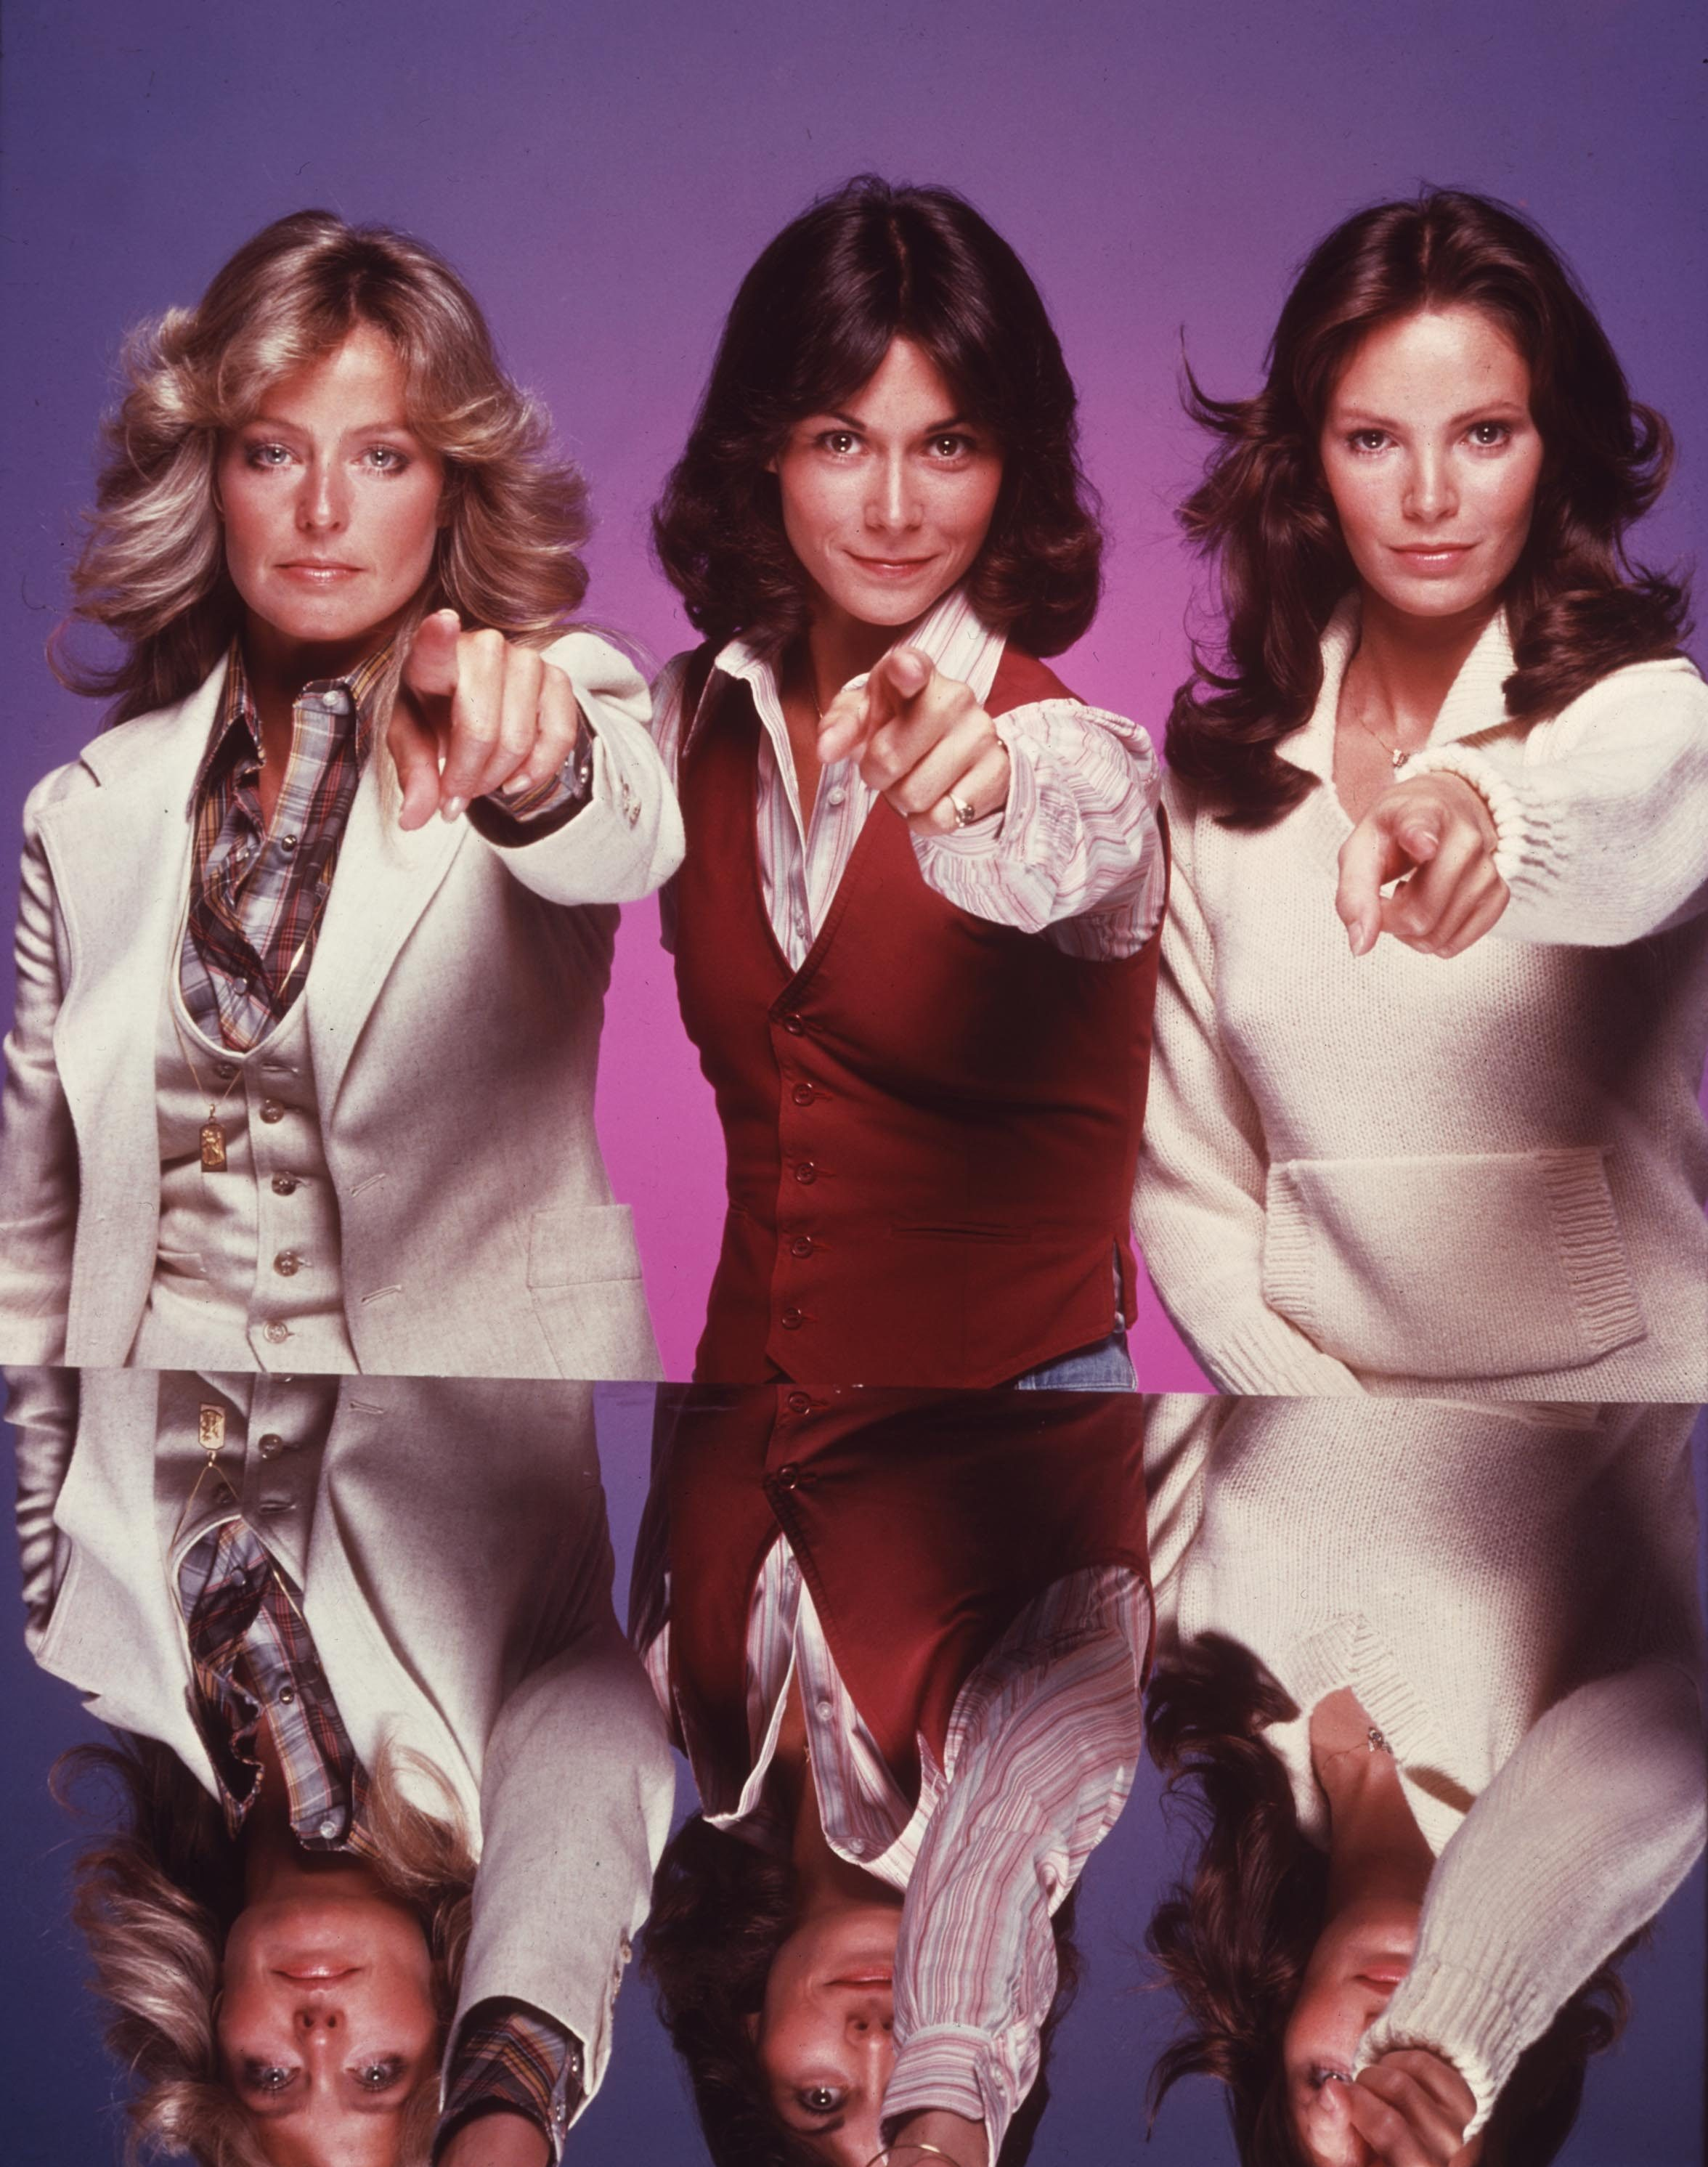 Editorial use only. No book cover usage. Mandatory Credit: Photo by Spelling-Goldberg/Kobal/Shutterstock (5885677p) Farrah Fawcett, Kate Jackson, Jaclyn Smith Charlie's Angels - 1976-1981 Spelling-Goldberg USA Television